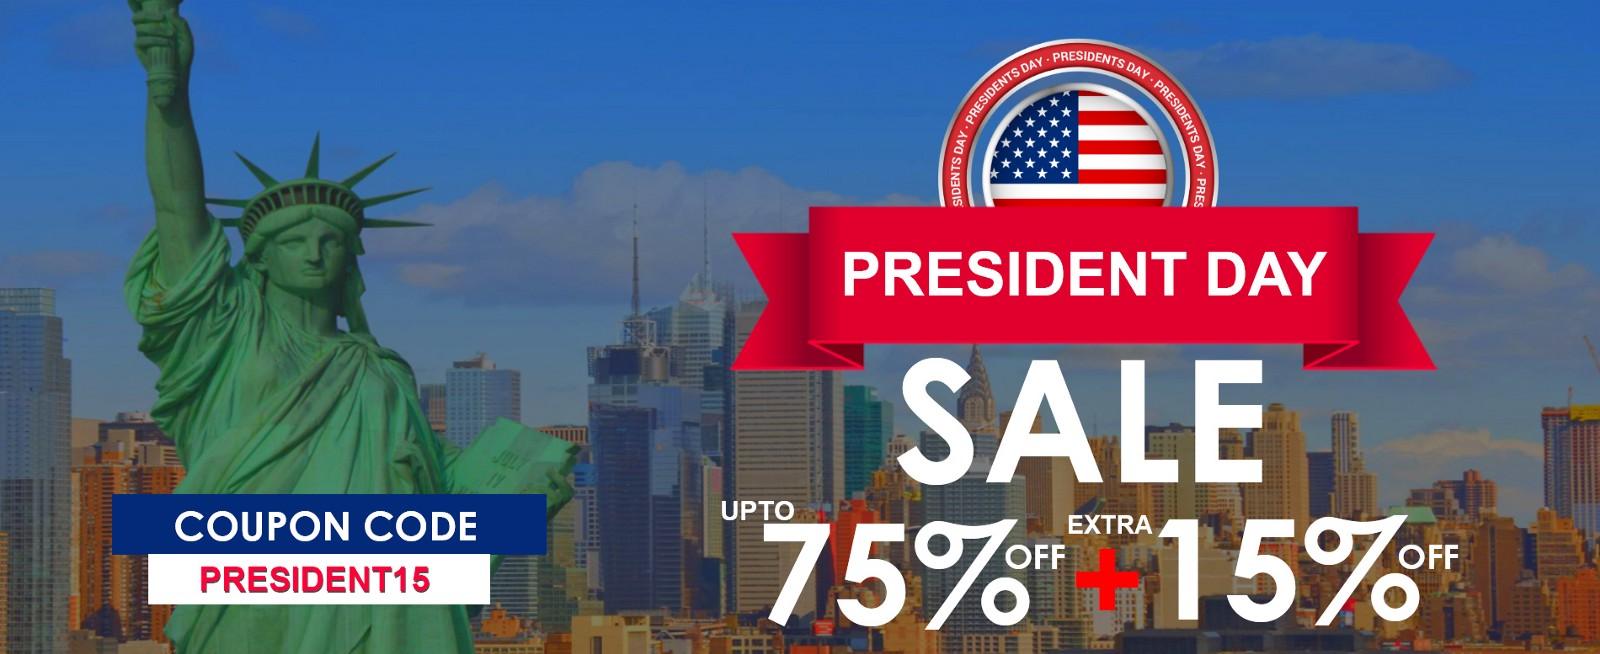 Big Savings On Home Decor And Area Rugs Presidents Day Sale 2018